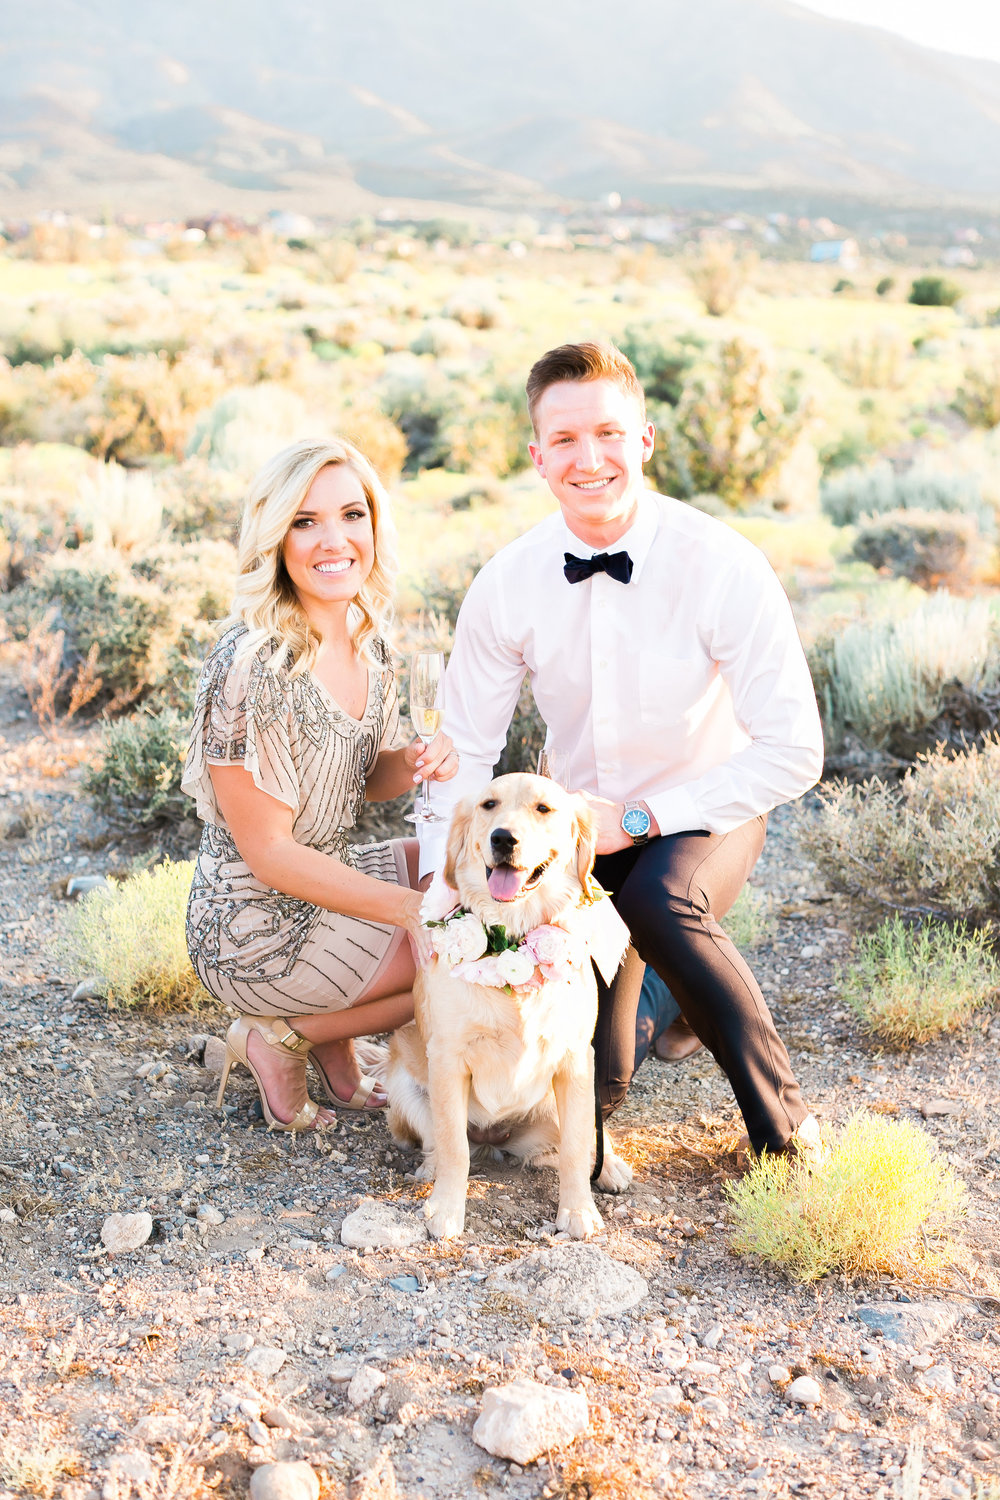 Family photo with dog at engagement and proposal session.